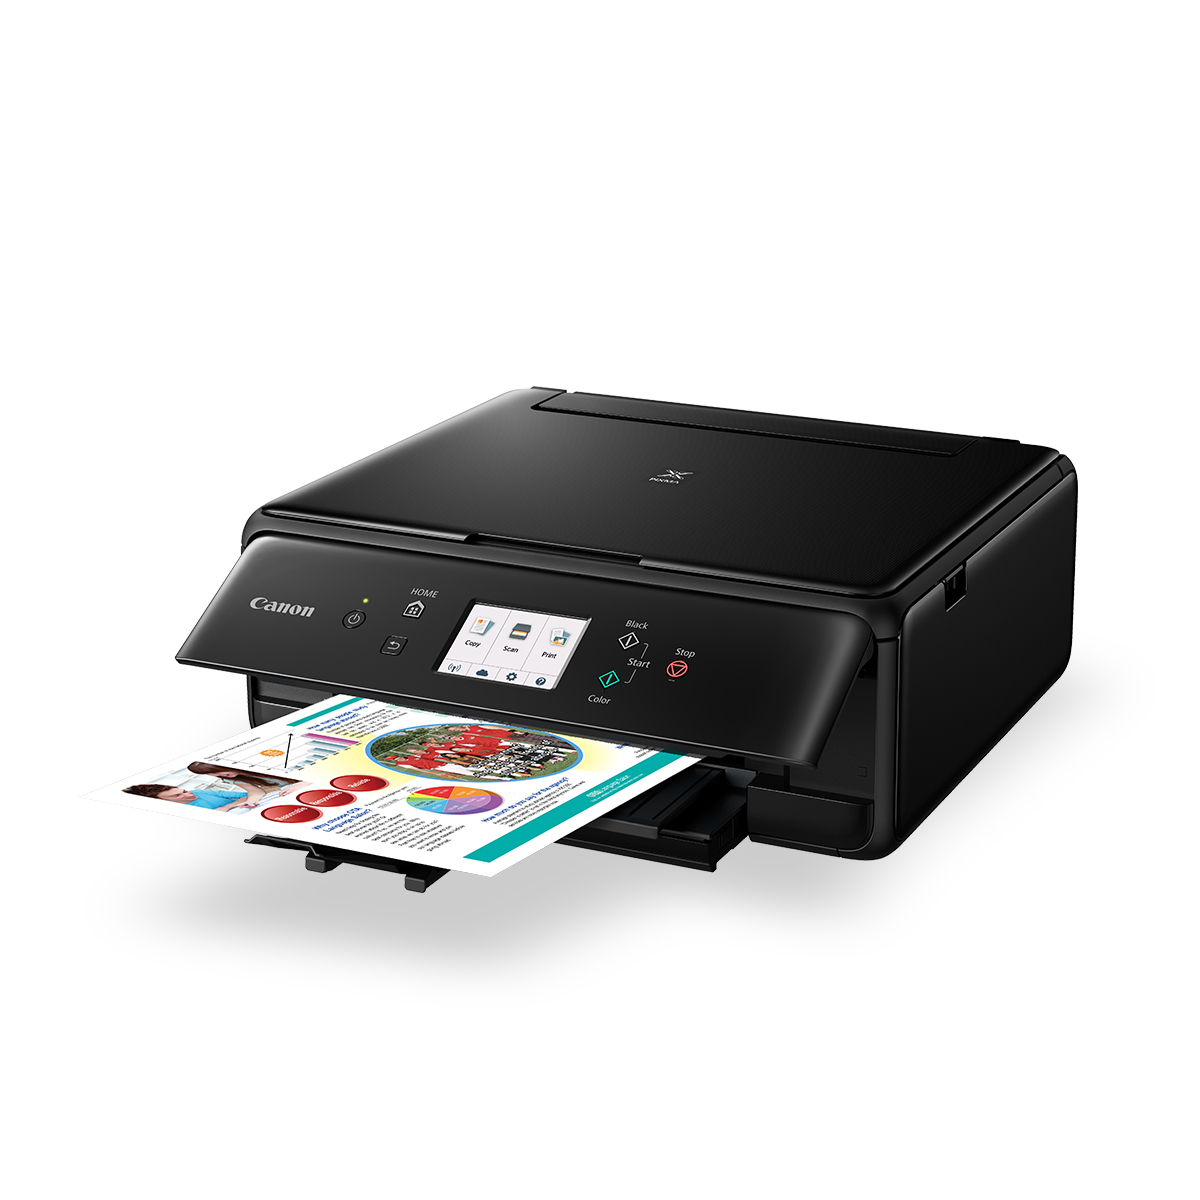 PIXMA TS6060 black front angled with shadow